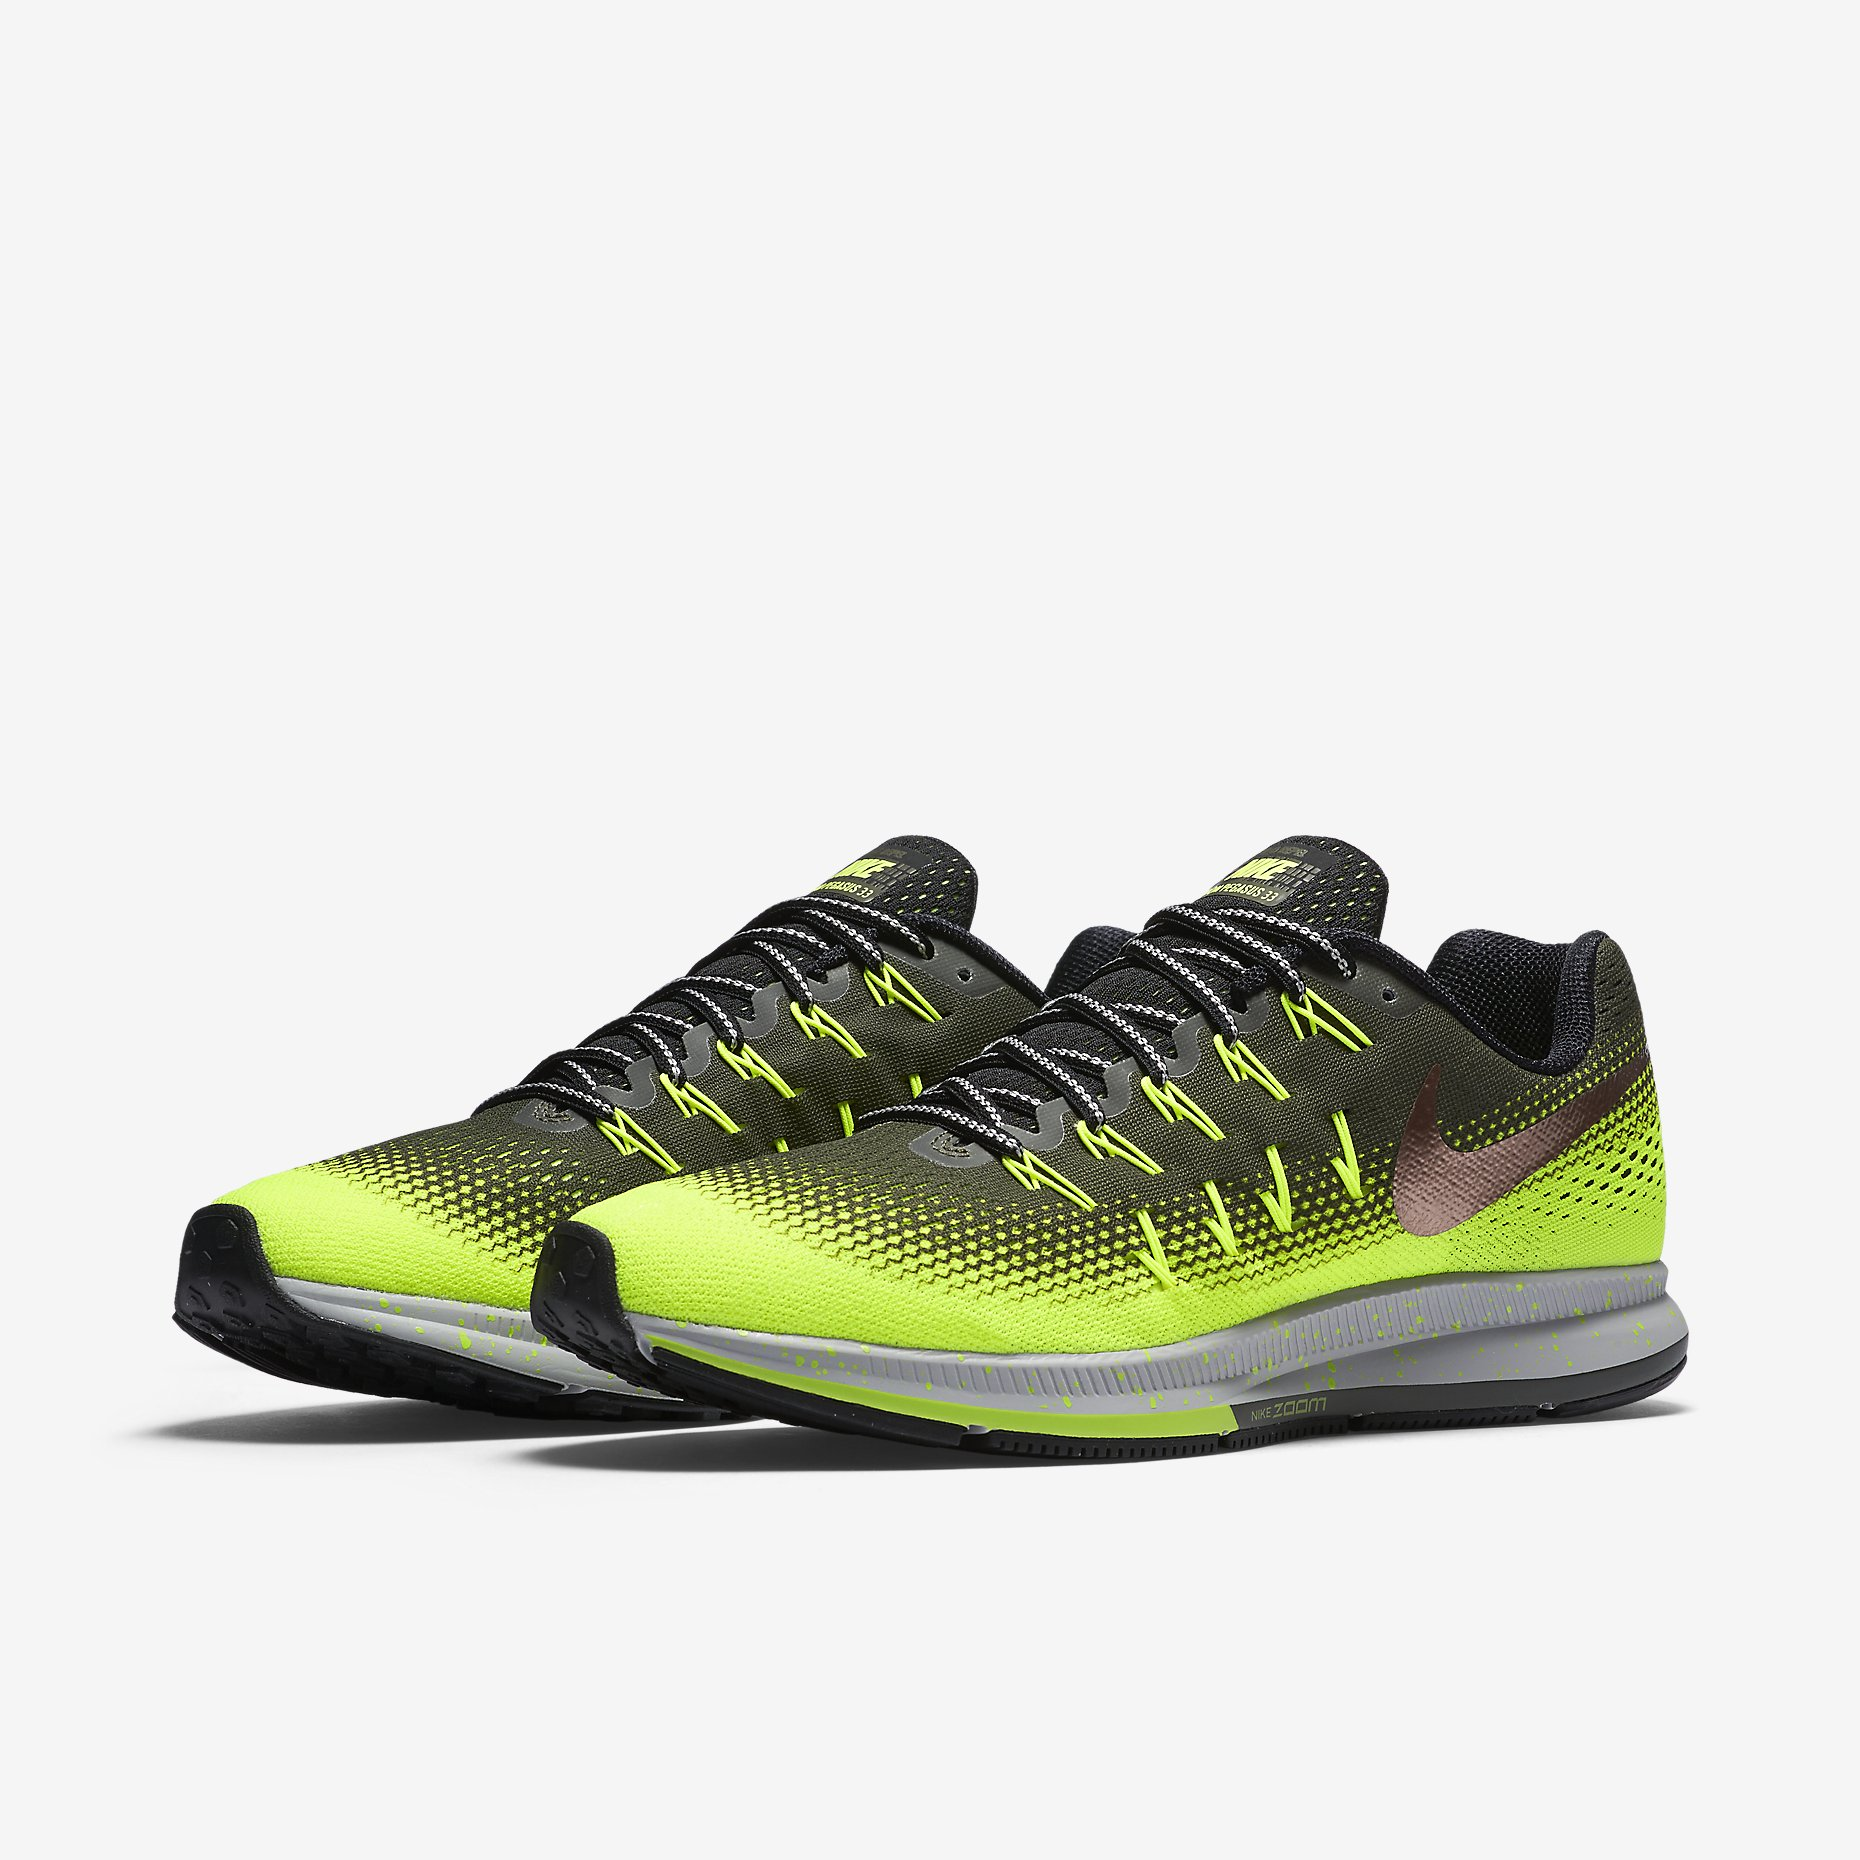 a76dd80574a Nike Pegasus 33 Shield Men s Running Shoes - Alton Sports